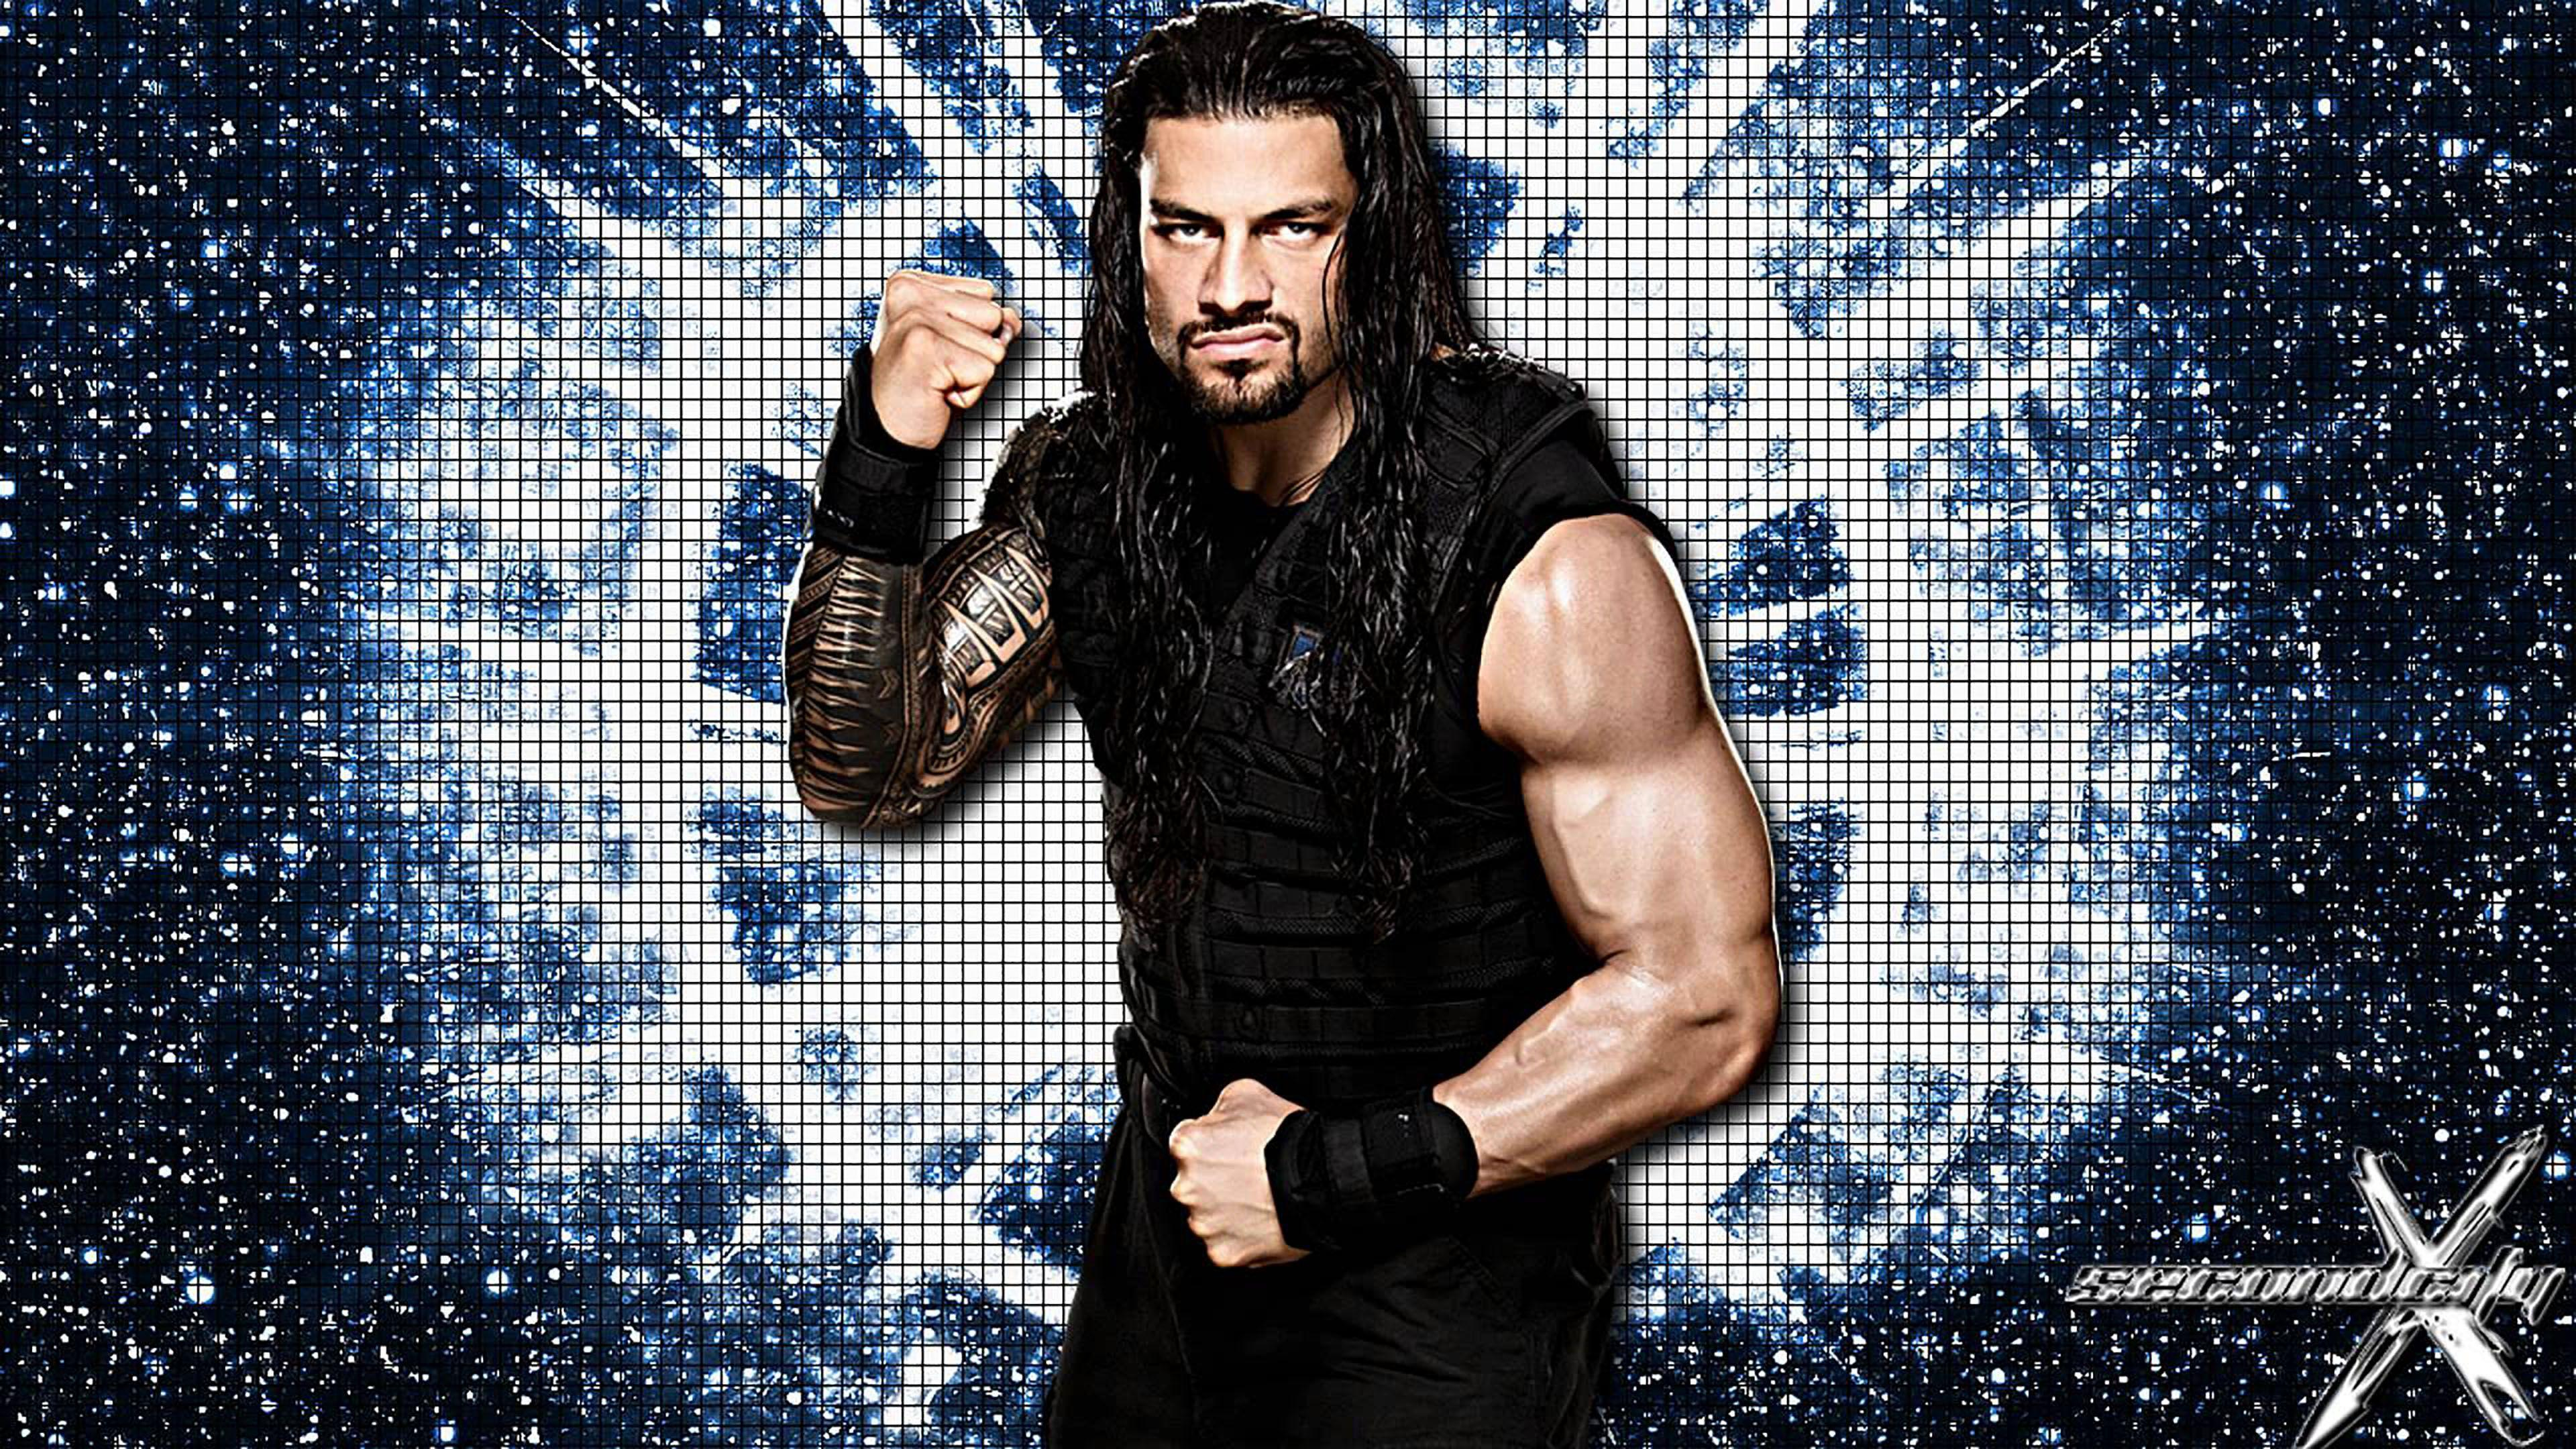 Roman Reigns WWE Wrestler RAW SmackDown Wallpapers